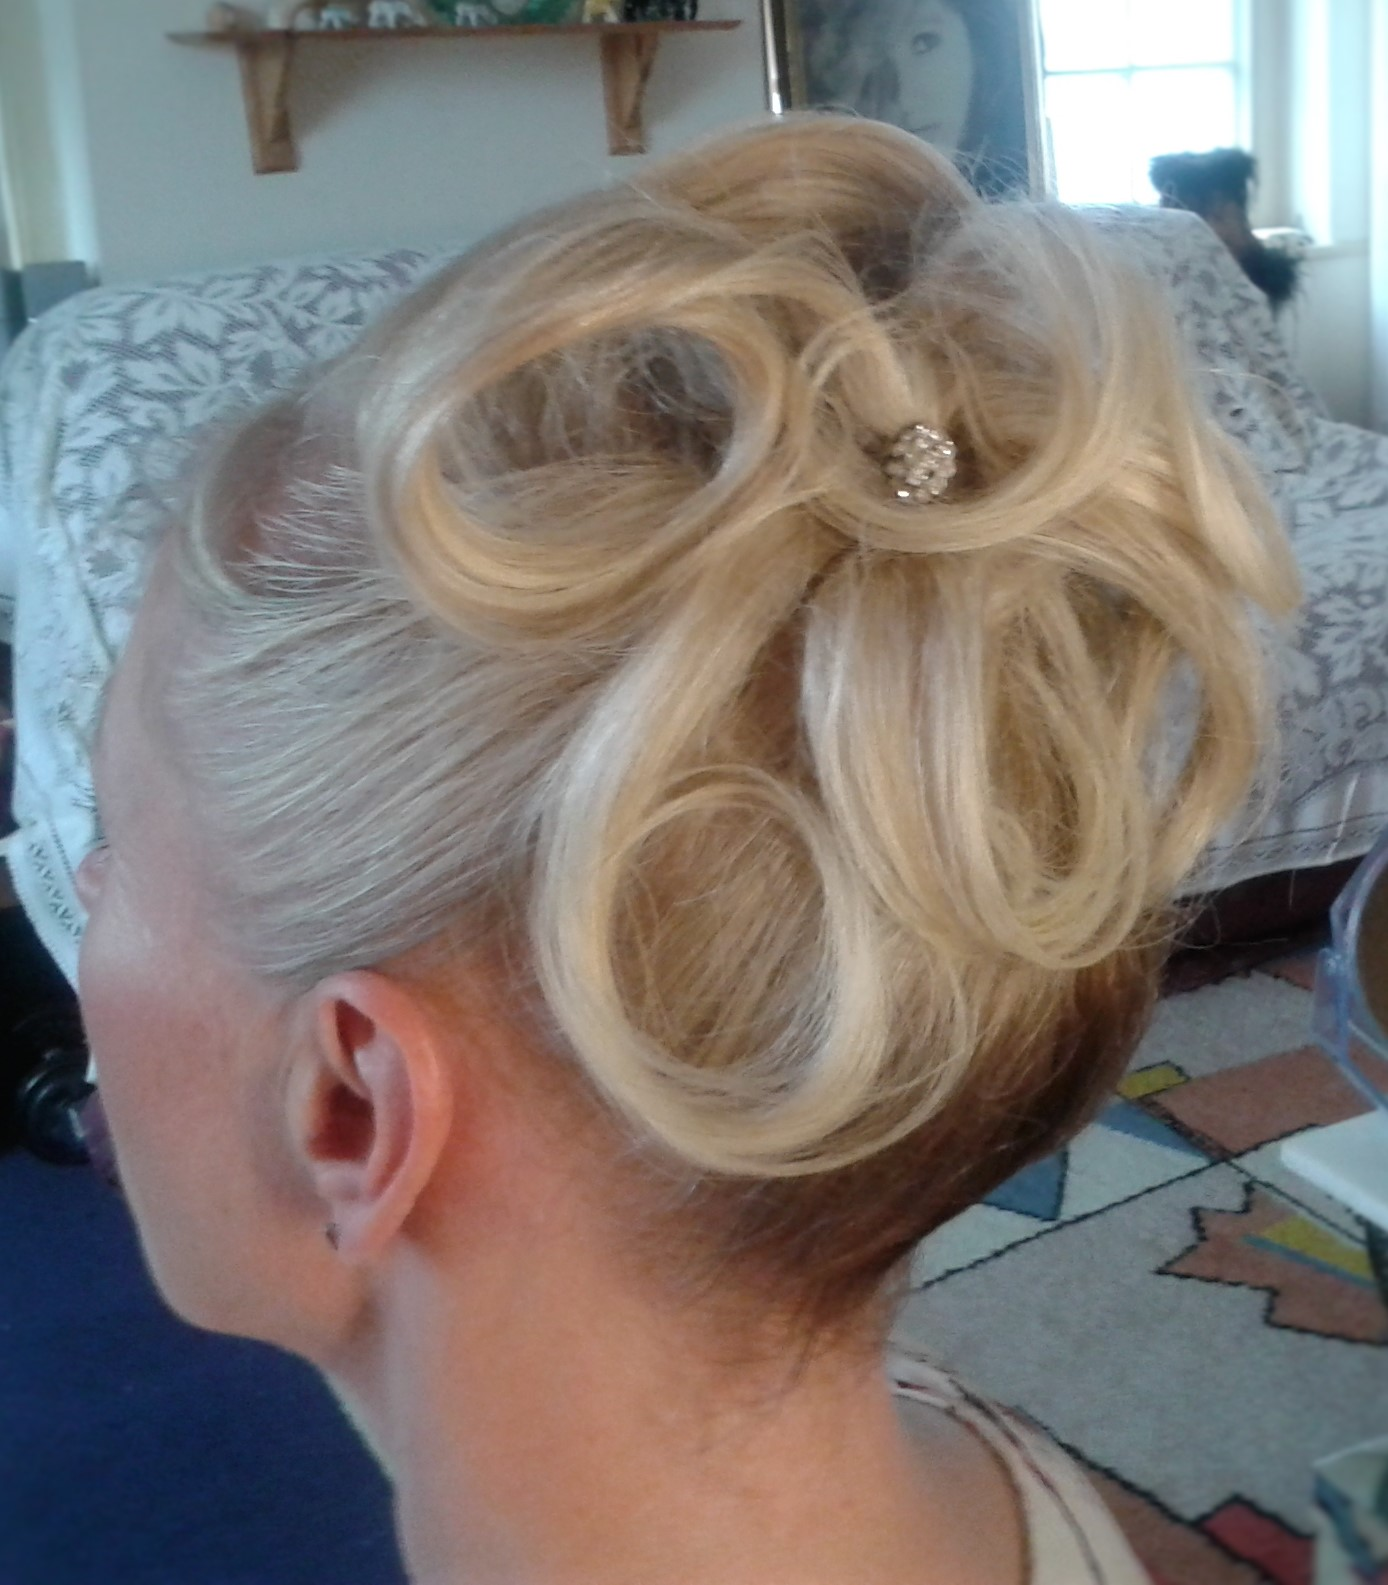 Wedding hair services SW7